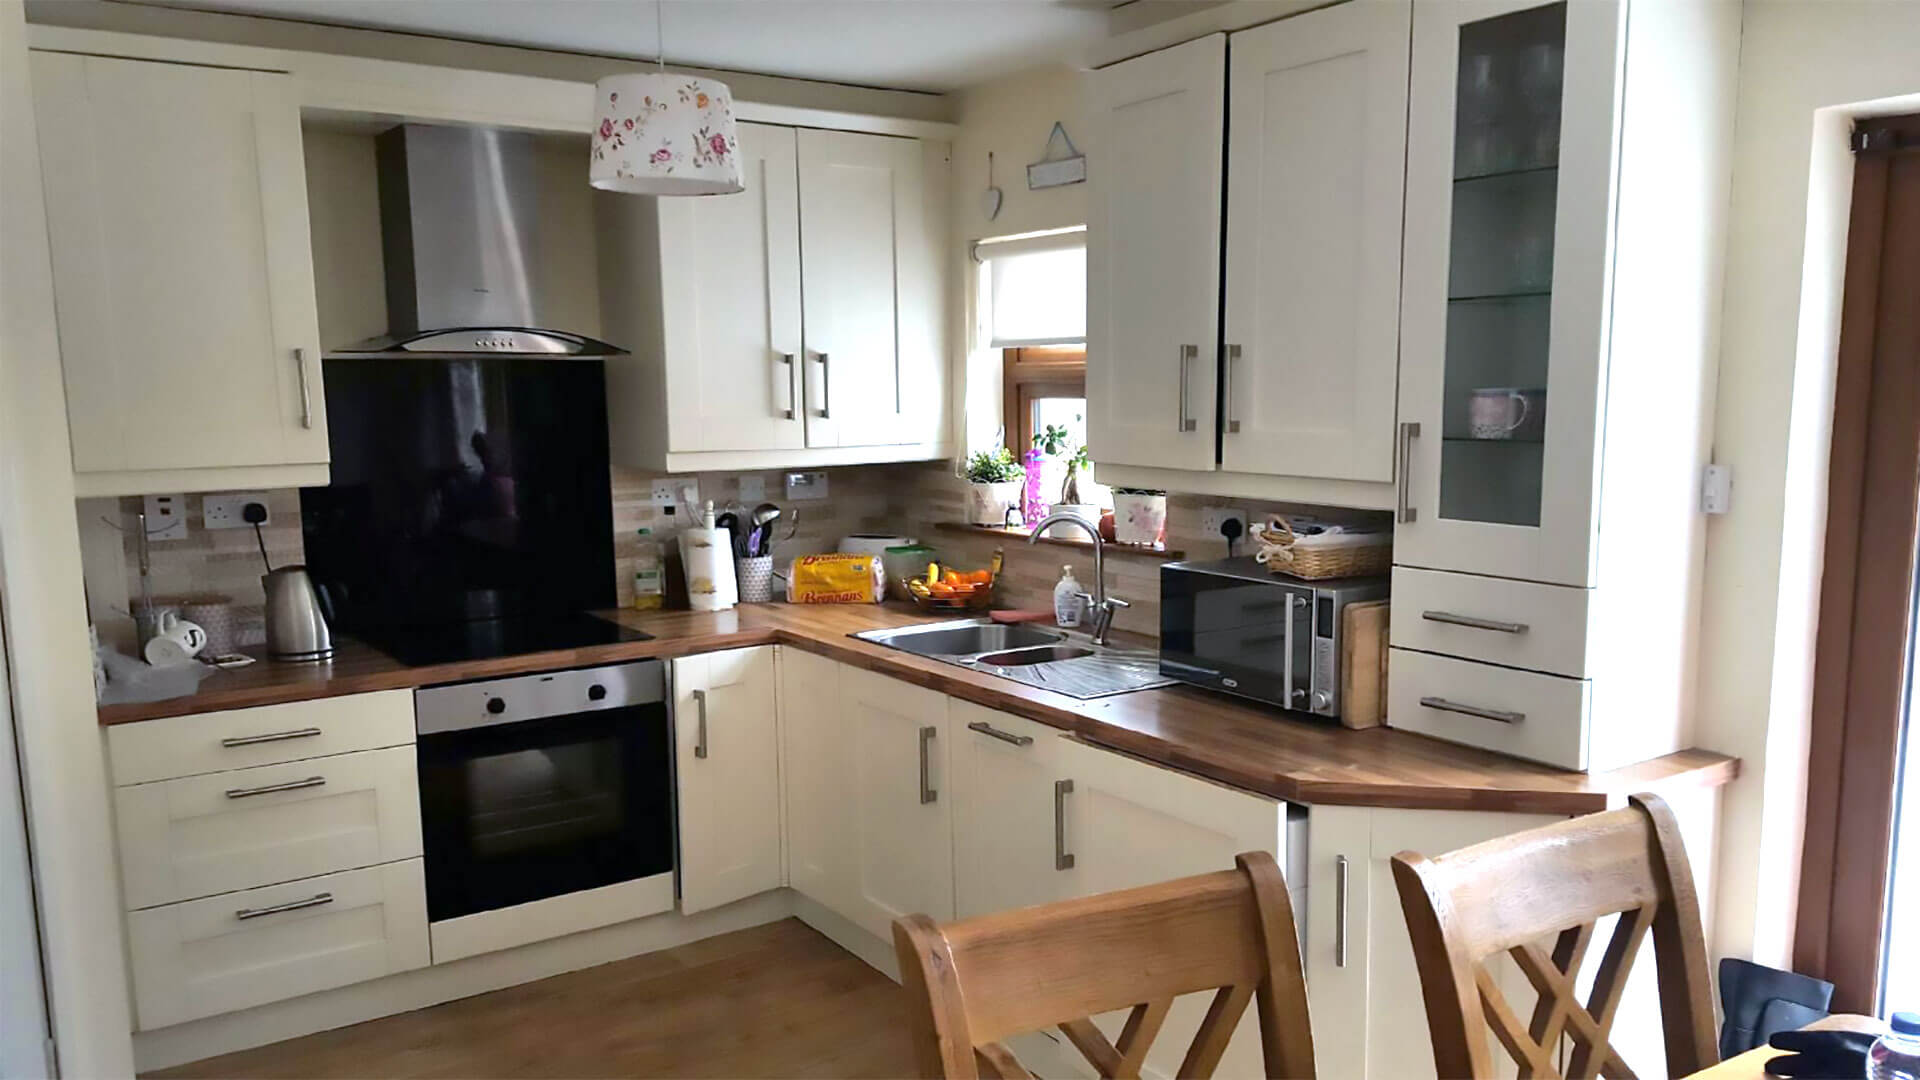 respray kitchens, Kitchen Respray Dublin, Kitchen Respray Ireland, Kitchen Respray, Fitted kitchens Dublin, kitchen respray Ireland, Furniture respray, wardrobes respray, Kitchen Renovation, upcycle kitchen,